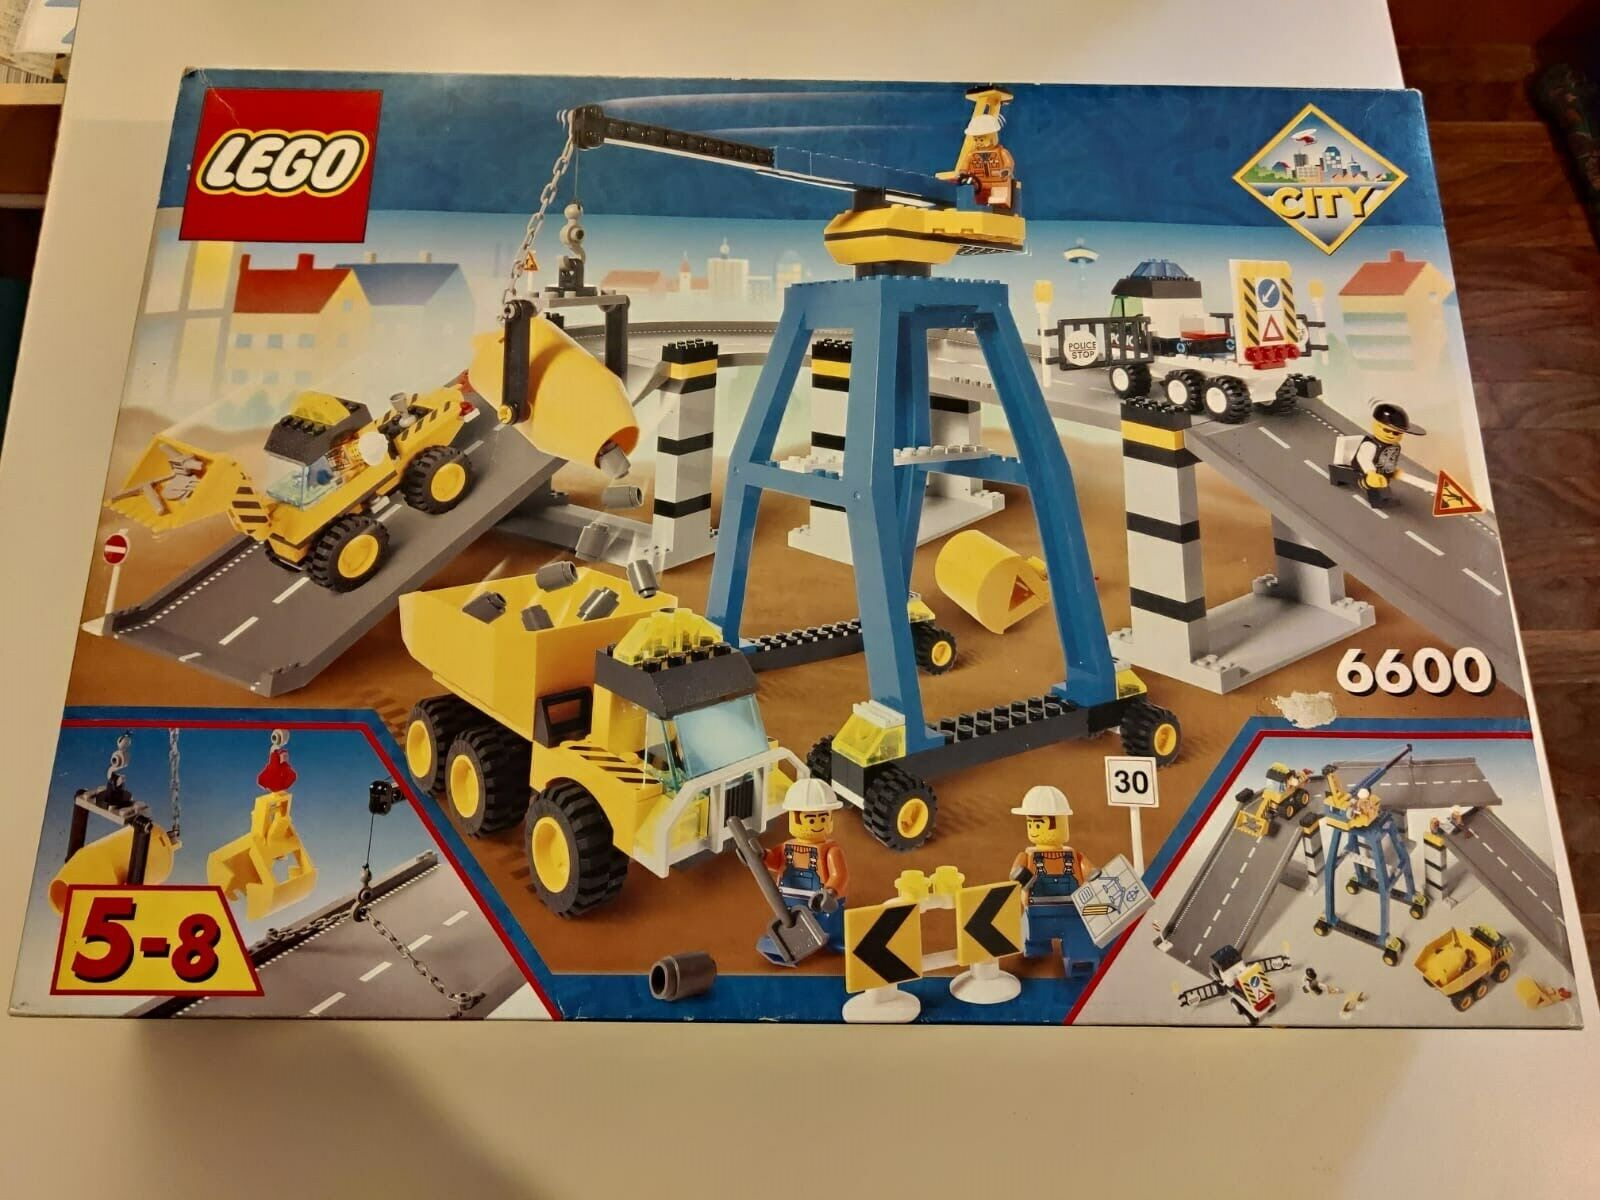 Lego 6600 Highway Construction - USED USED USED LIKE NEW CONDITIONS a69191